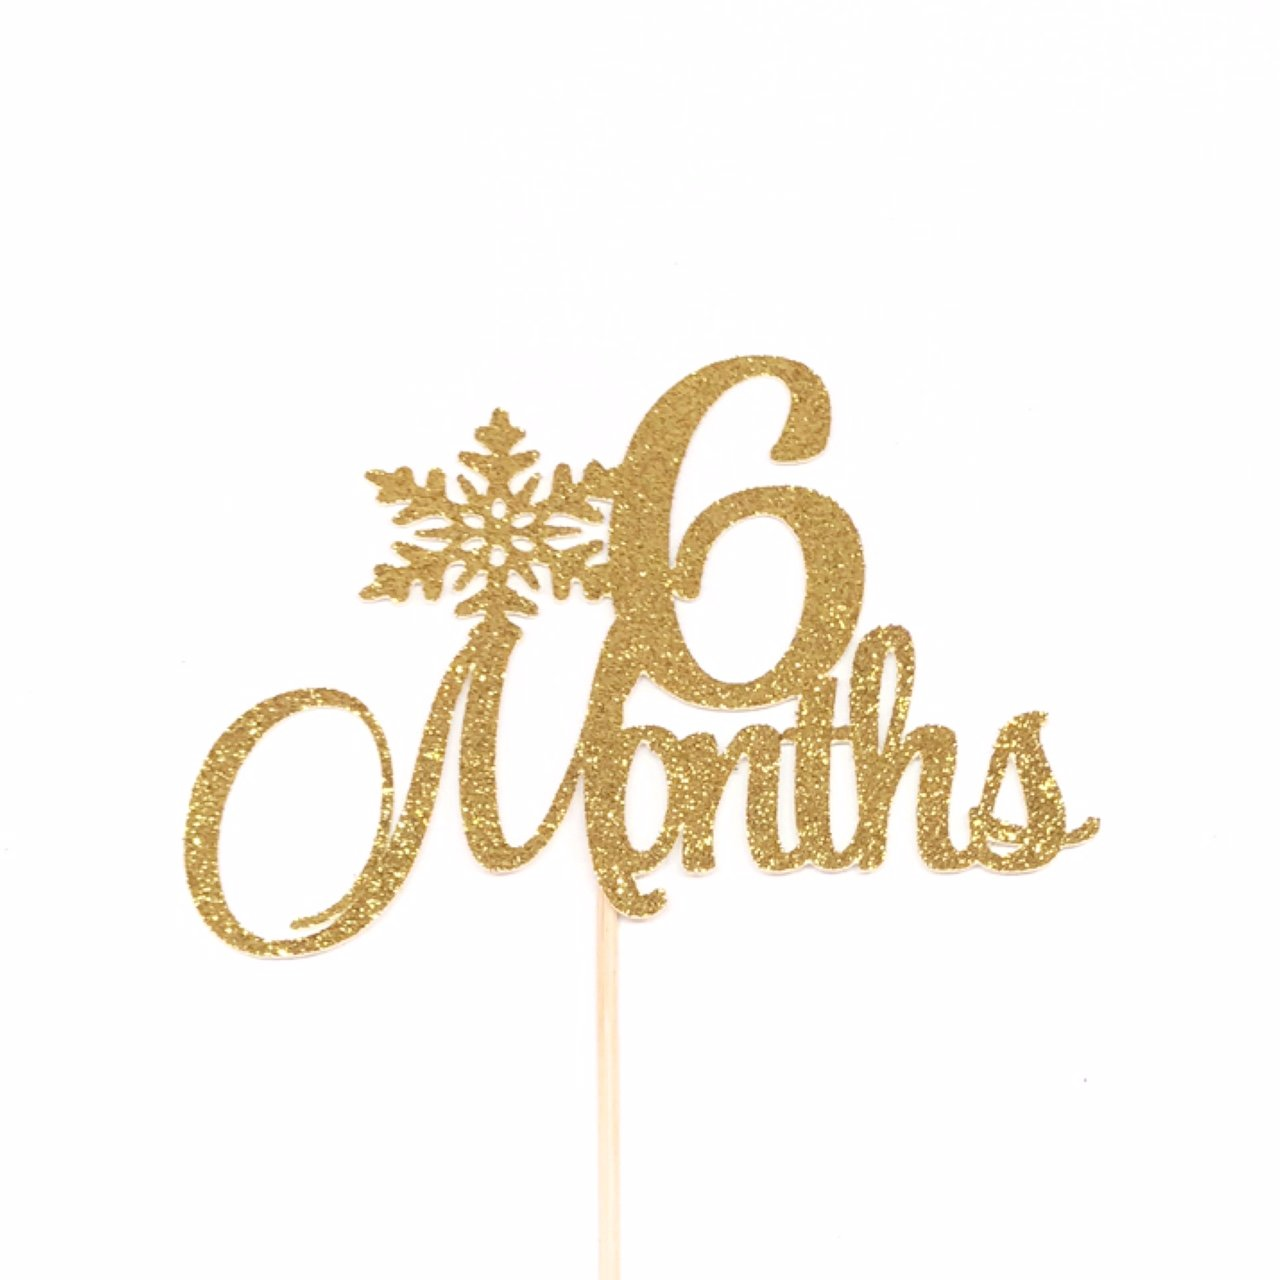 6 Months Cake Topper, Winter Baby Birthday Cake Topper, Snowflake Cake Topper, Half Cake Topper, Half Birthday Cake Topper, 1/2 Birthday Cake Topper, Happy 6 Months Cake Topper, 1/2 Cake Topper, 6 Months Anniversary